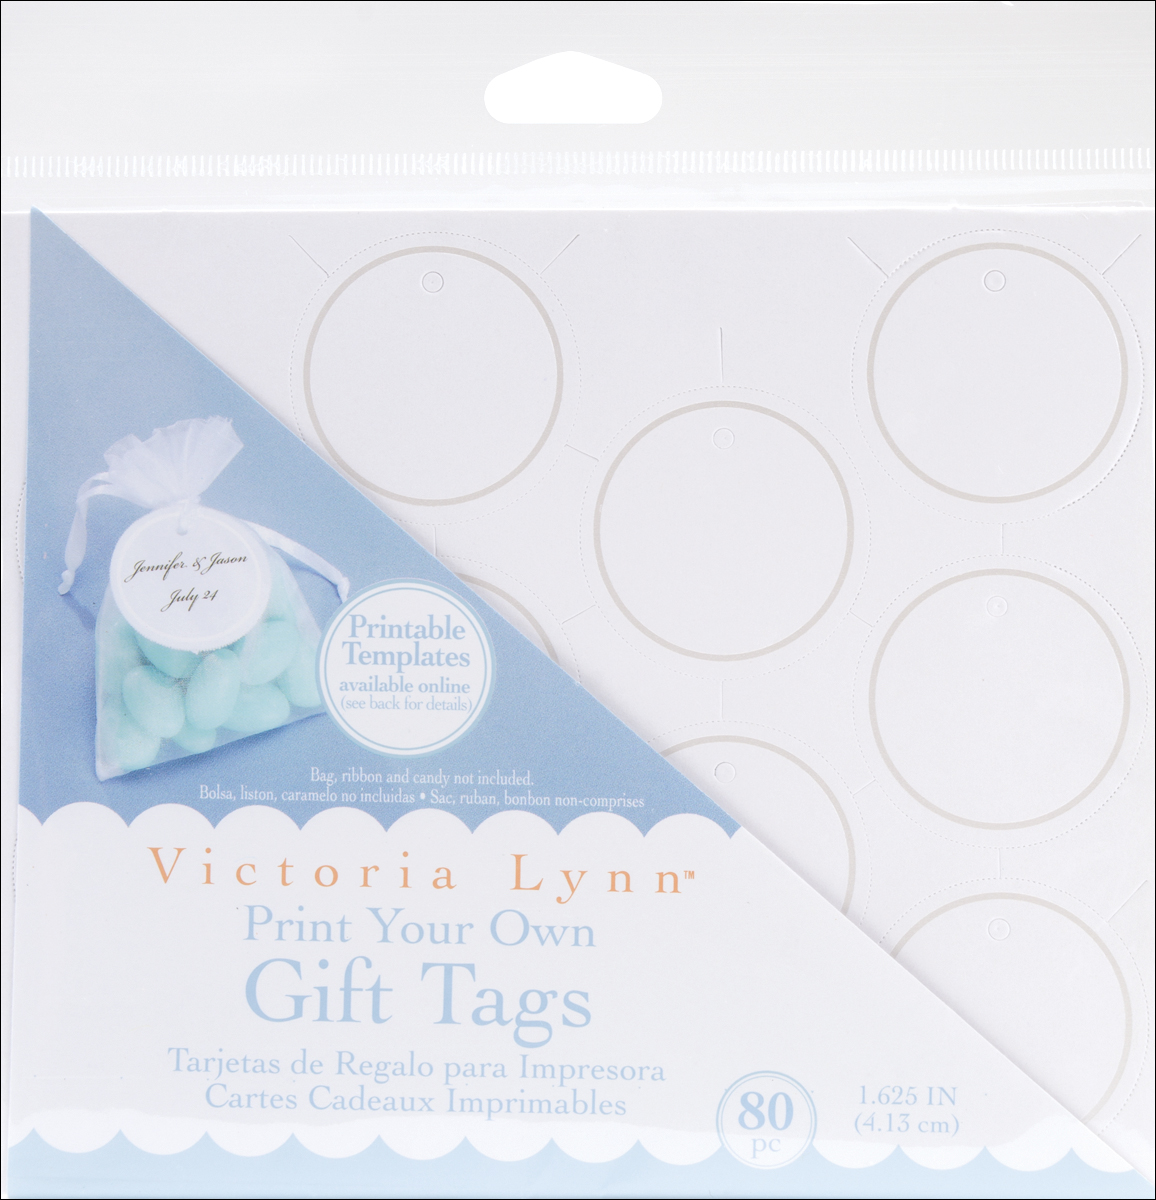 Darice Victoria Lynn Print Your Own Gift Tags 1.625 Inches White Round with Pearl Accent